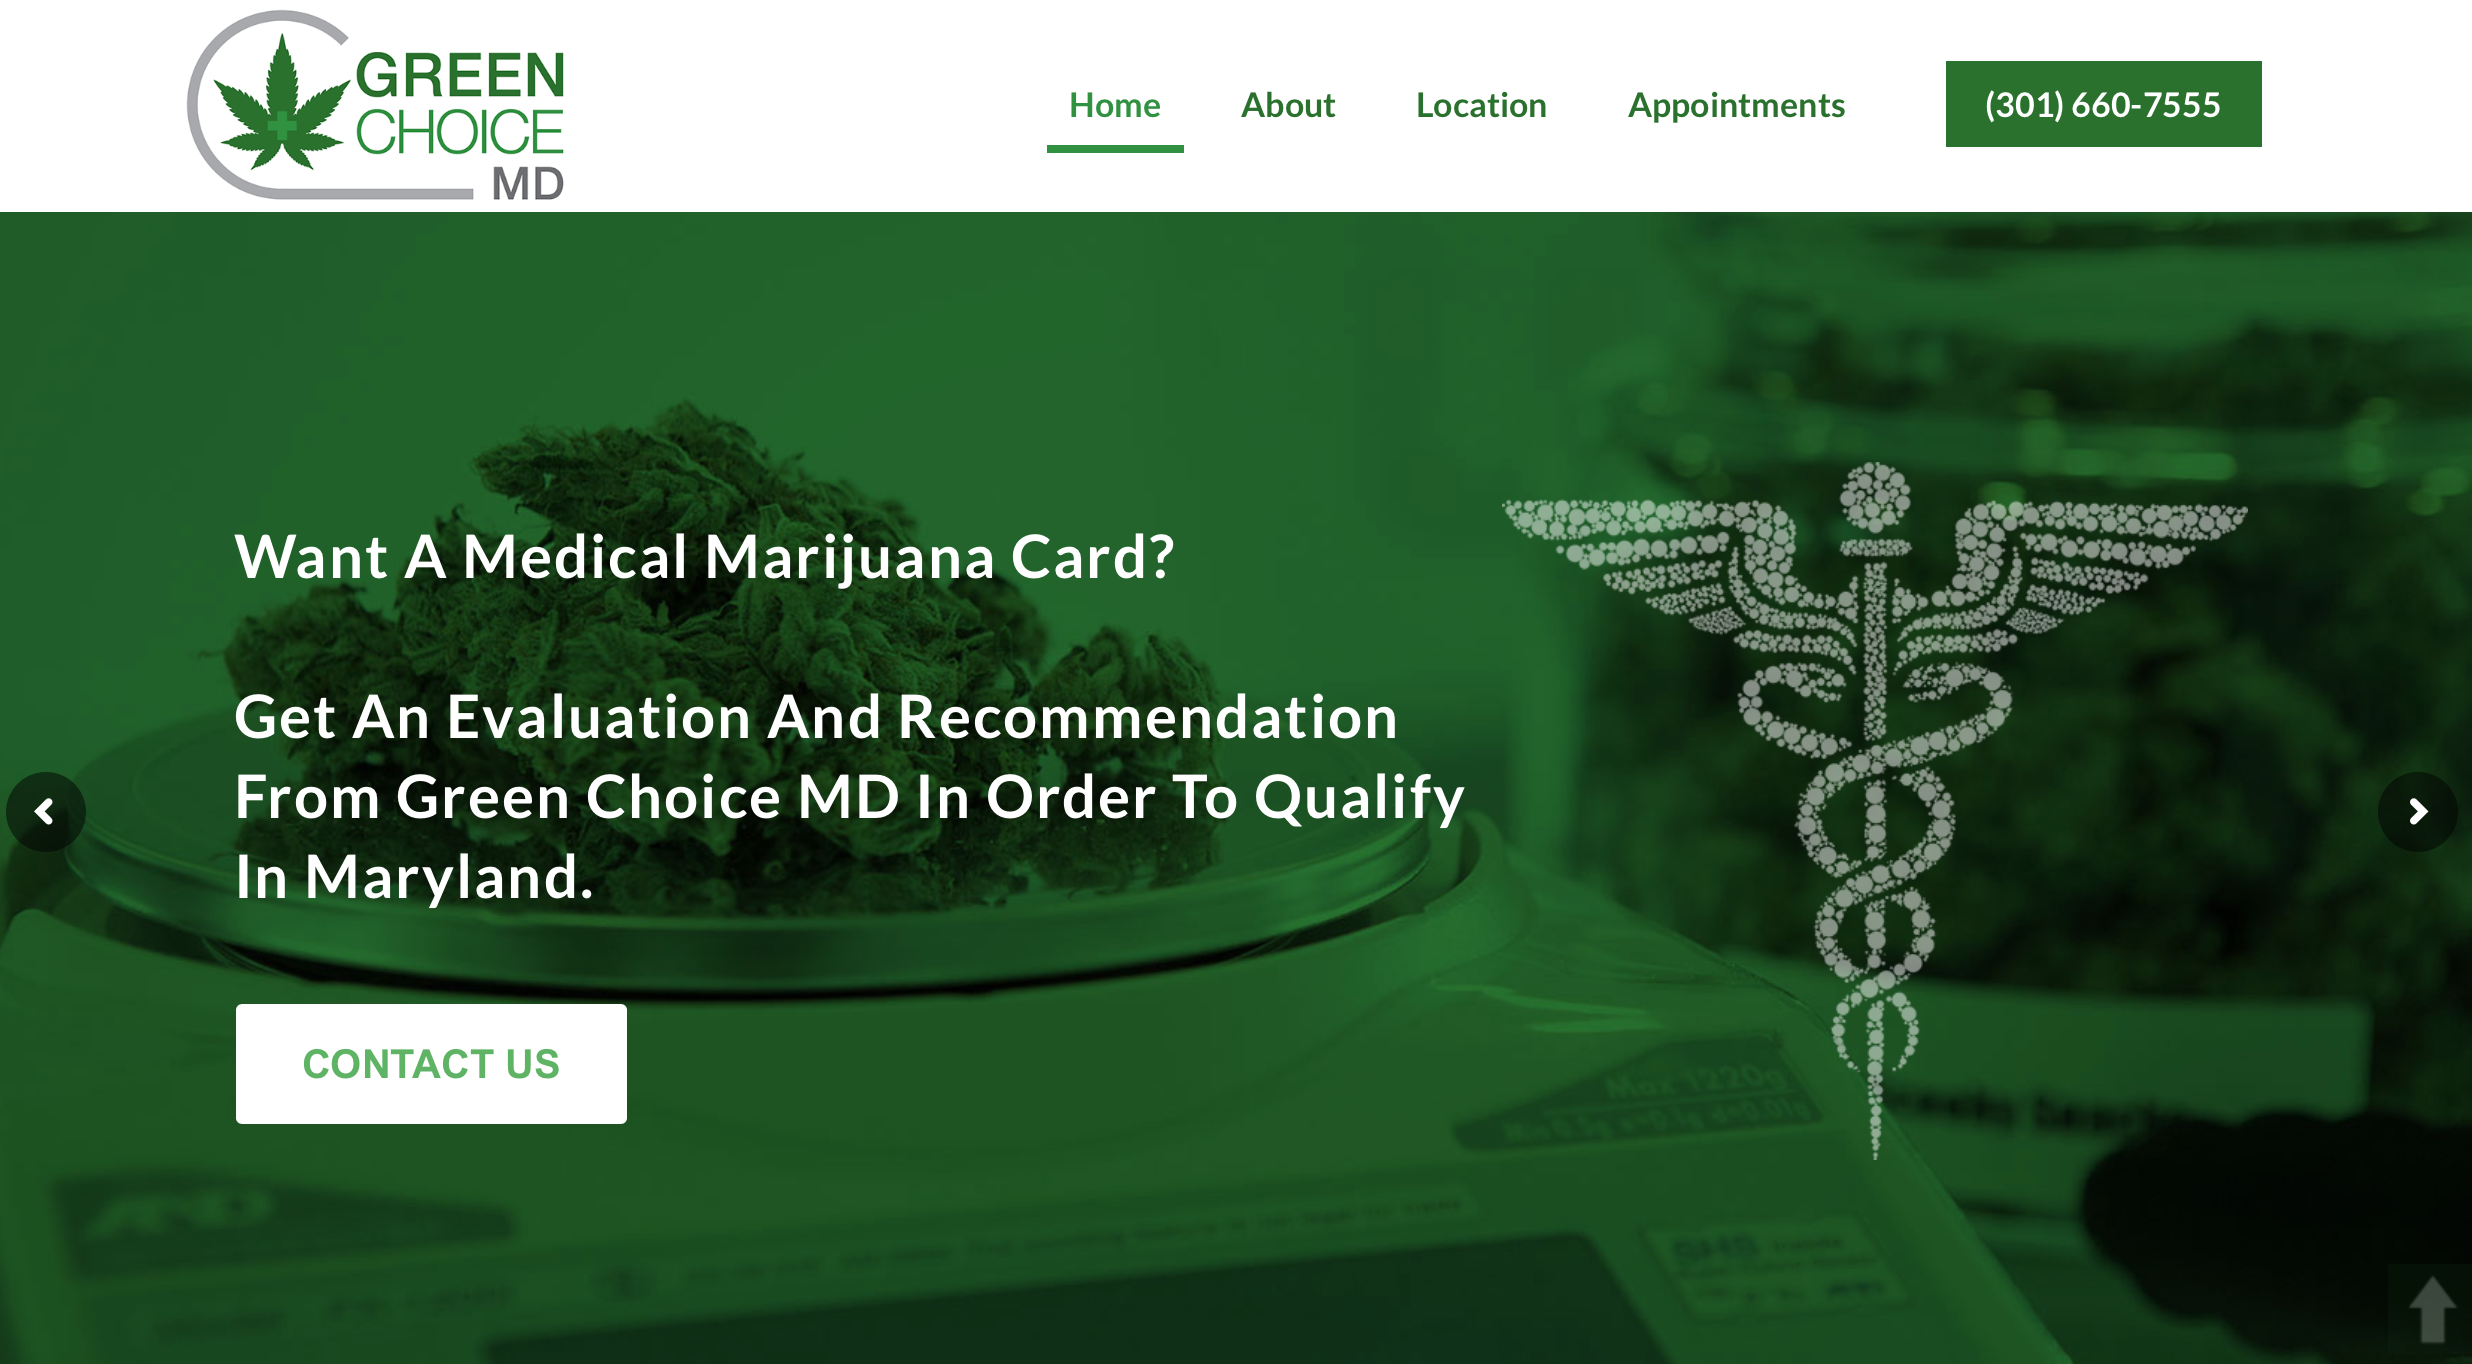 Green Choice MD Home Page